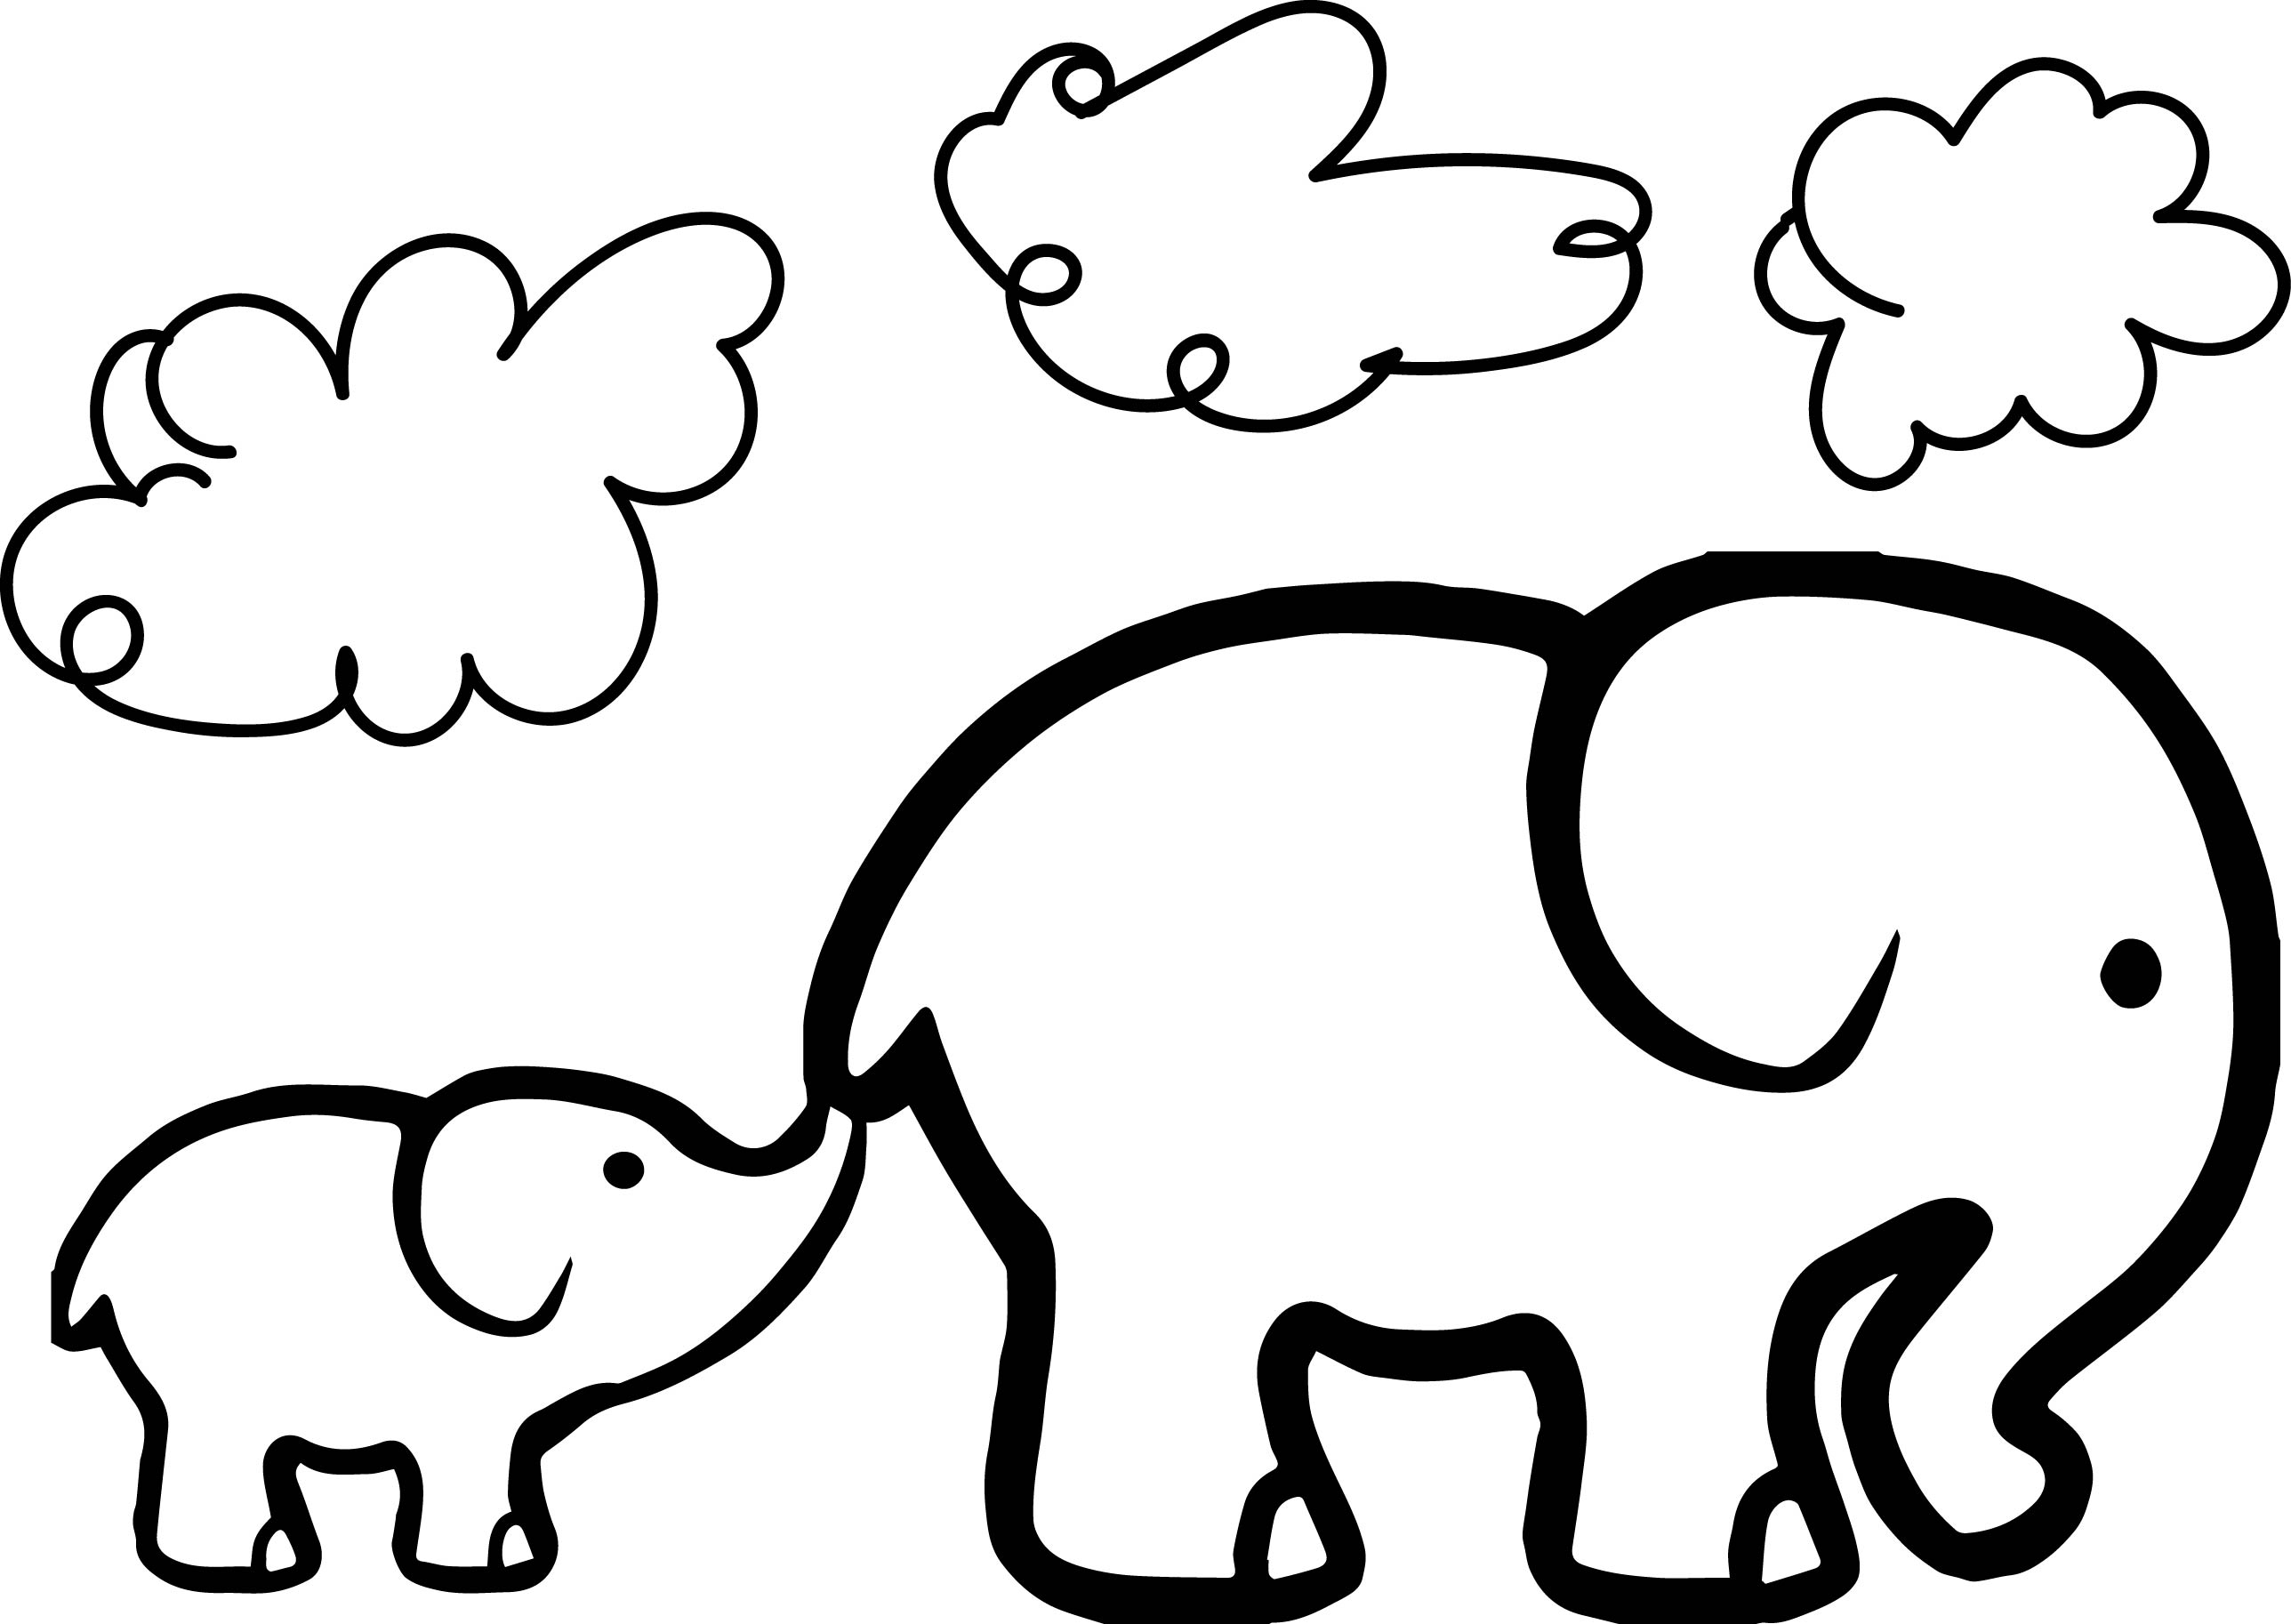 elephants coloring pages free printable elephant coloring pages for kids elephants pages coloring